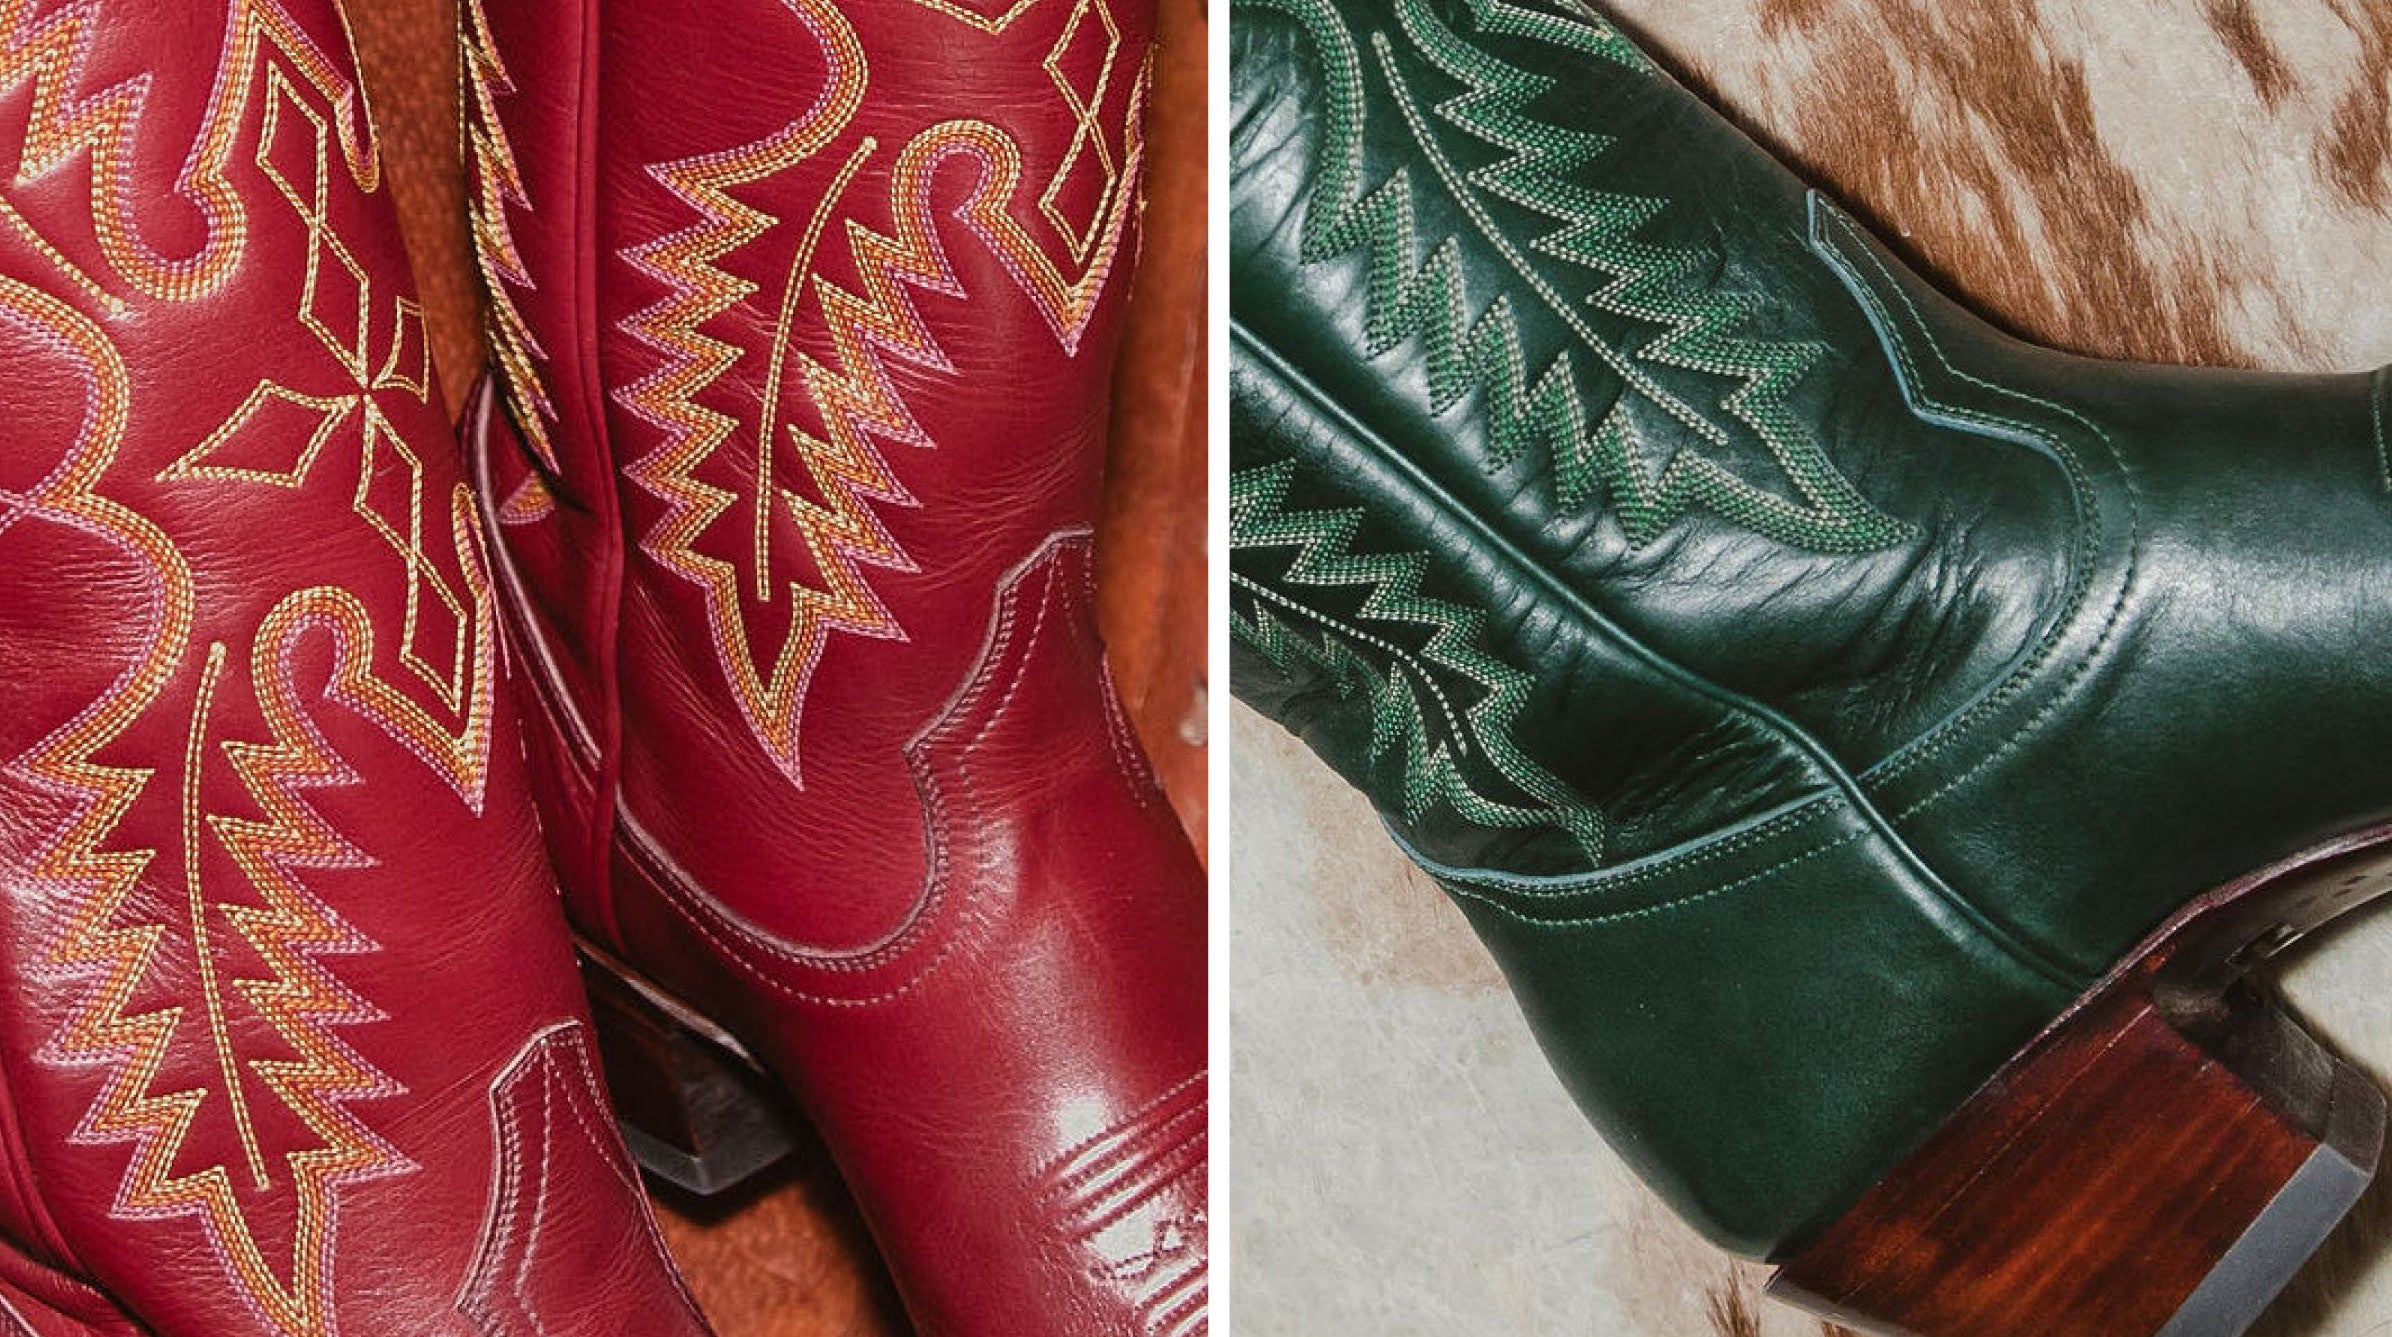 CITY Boots Red & Green Fall Cowboy Boots